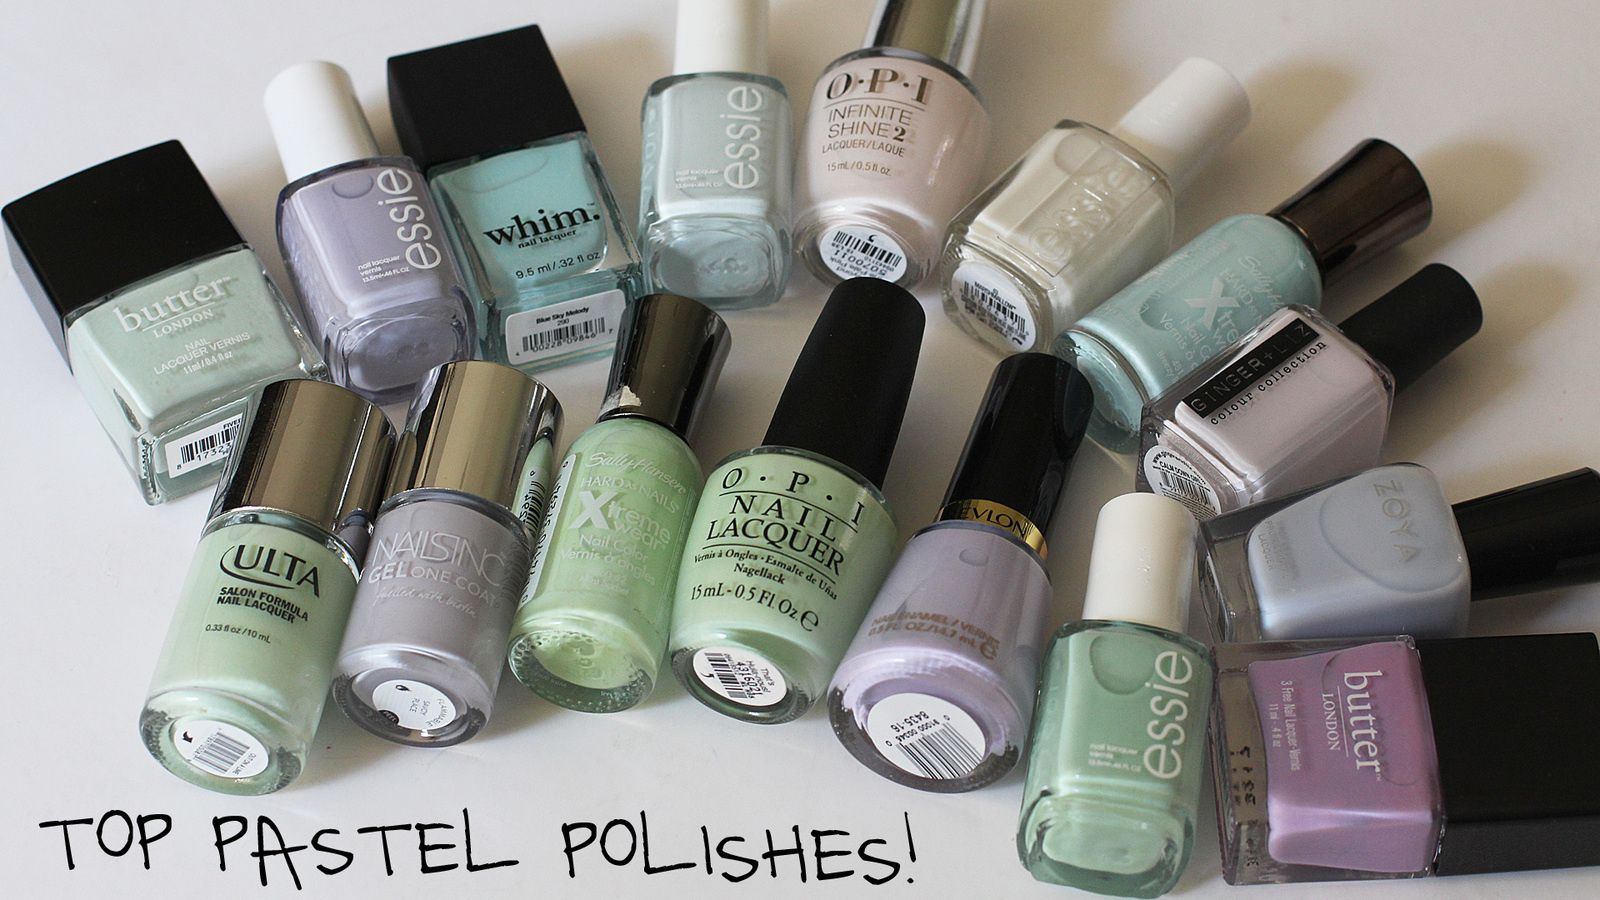 Top Pastel Polishes! Essie, OPI, Whim, Butter London &amp&#x3B; More!